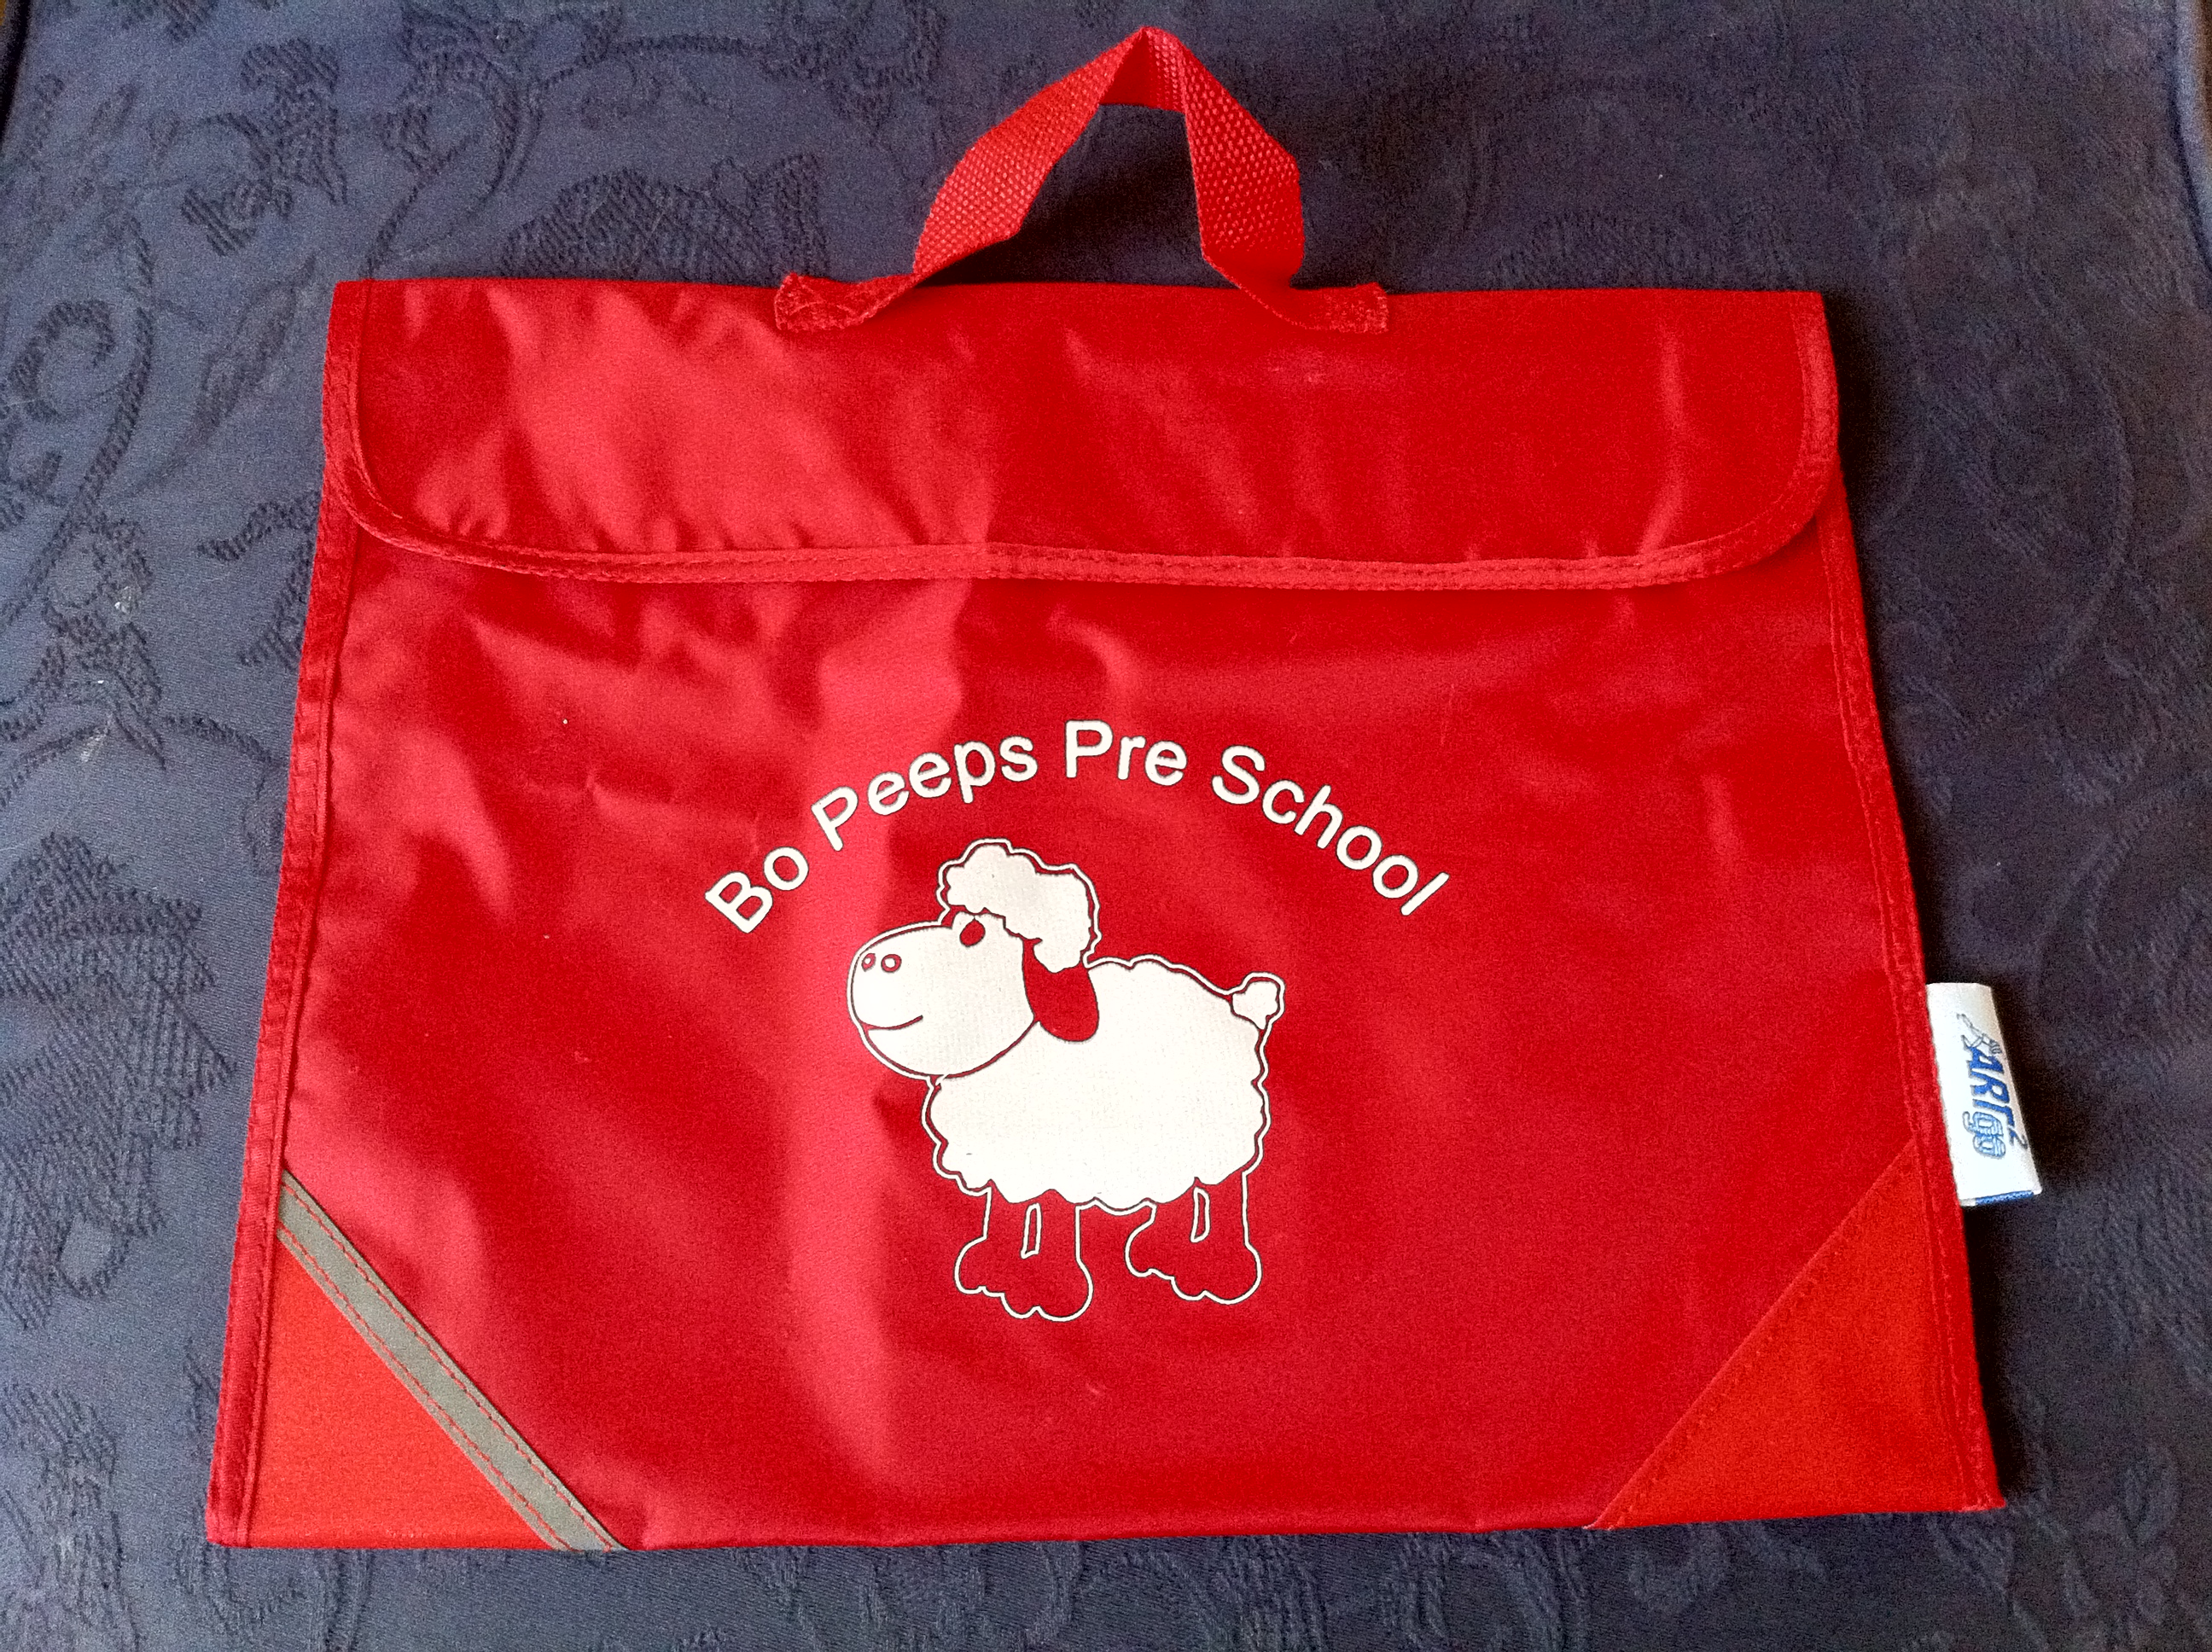 Bopeeps Preschool Bag